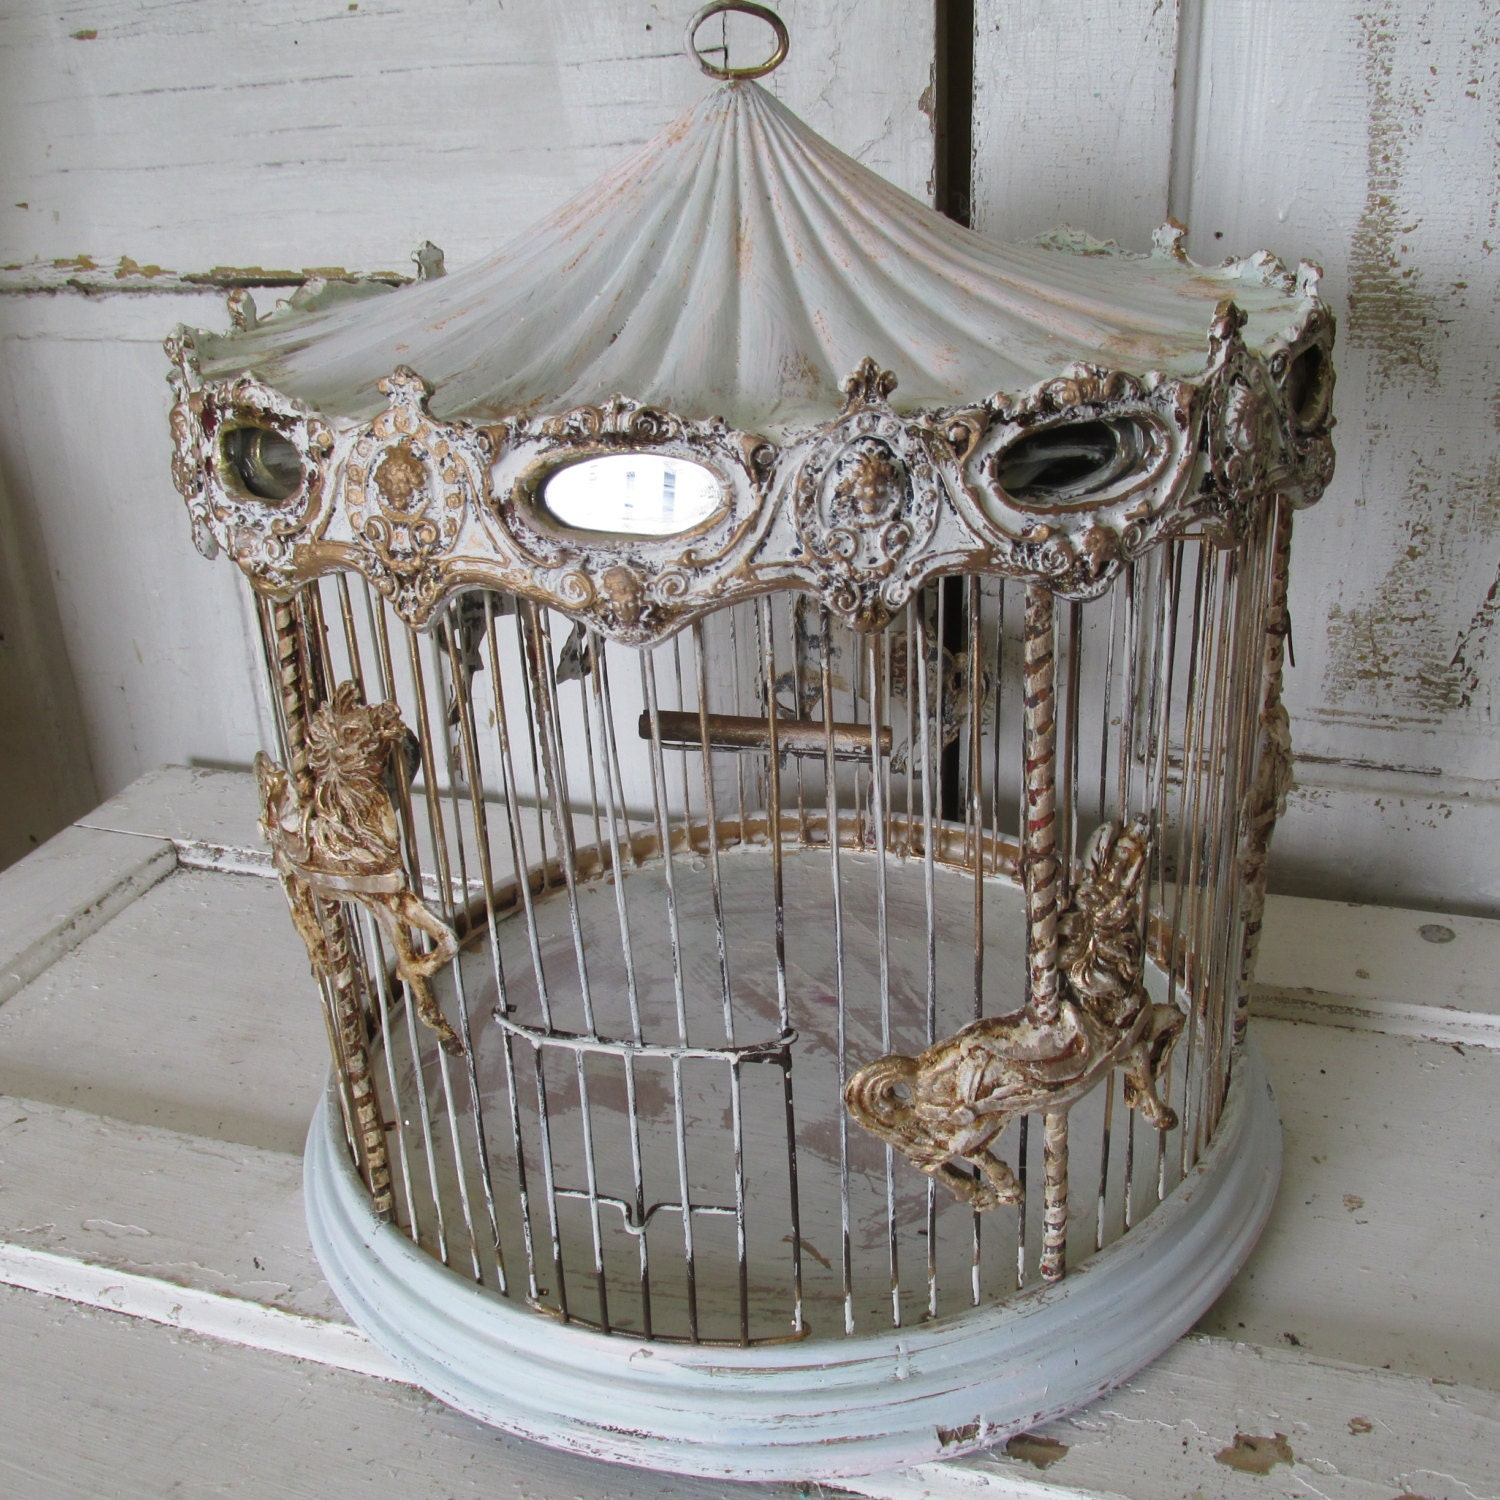 carousal bird cage antique wood wire ornate merry go round. Black Bedroom Furniture Sets. Home Design Ideas